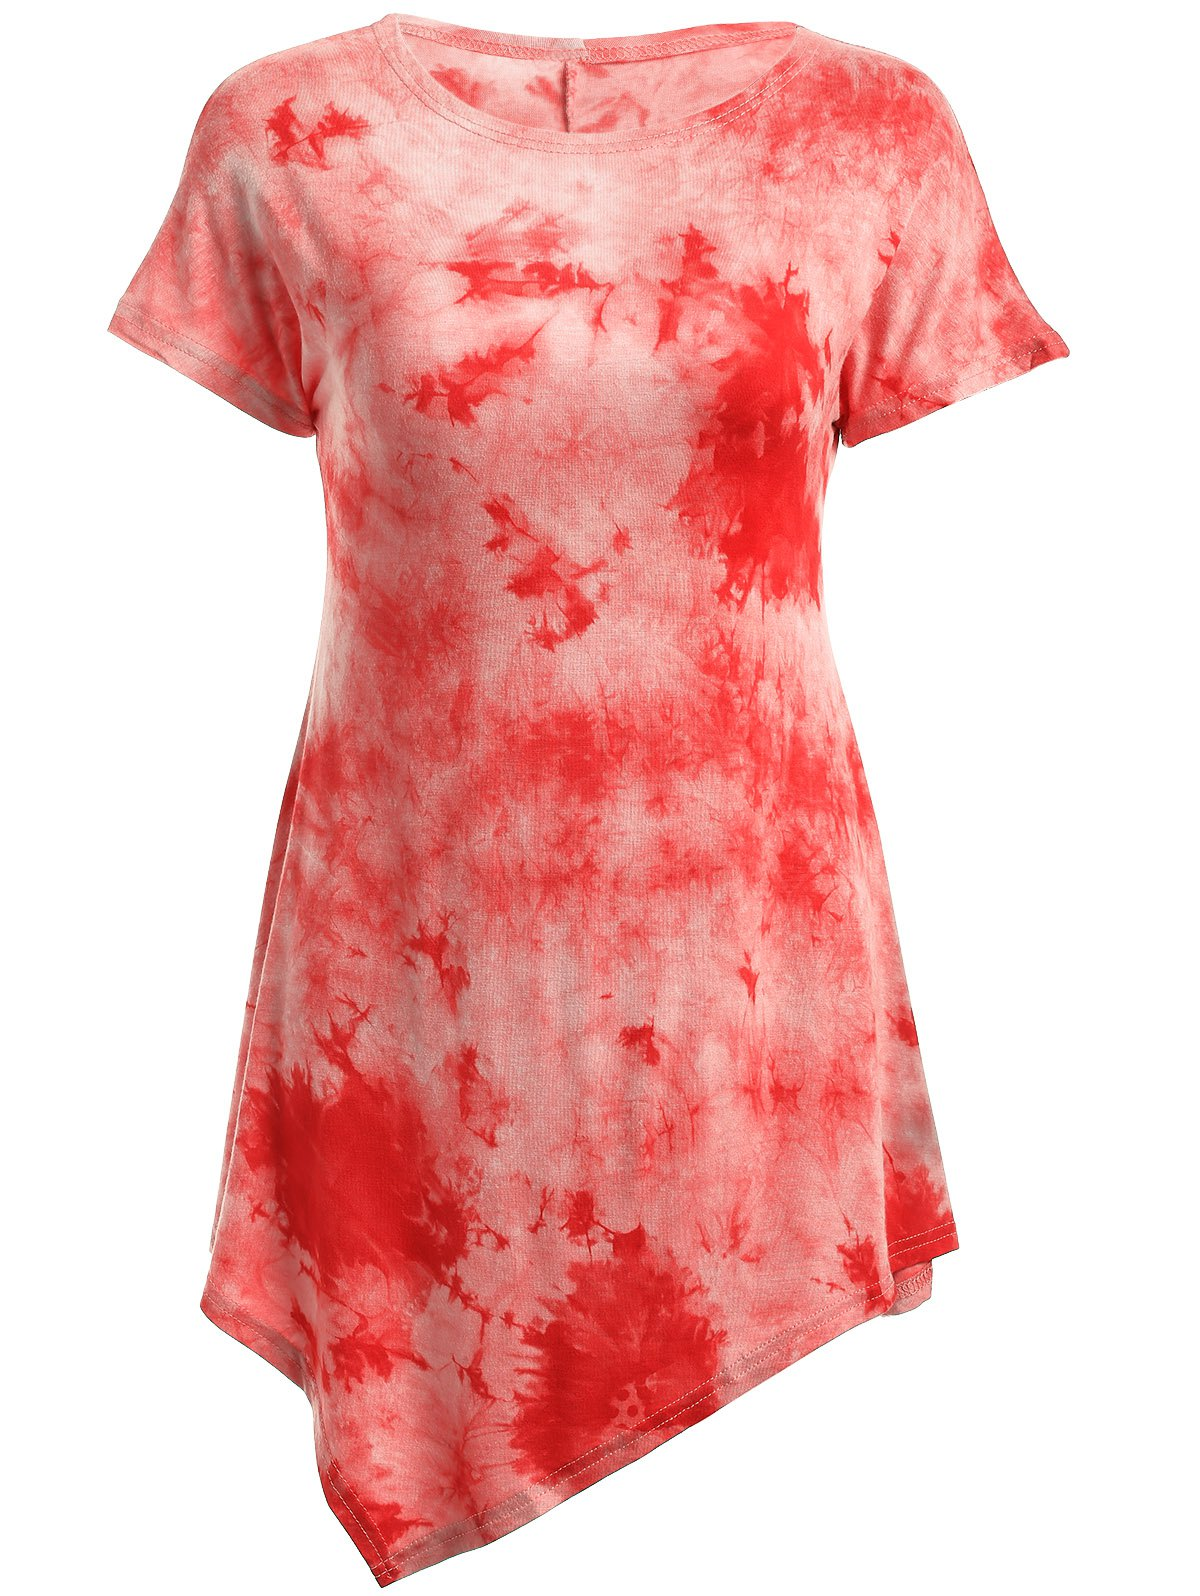 Tie-Dyed Short Sleeve Asymmetric T-Shirt - RED XL